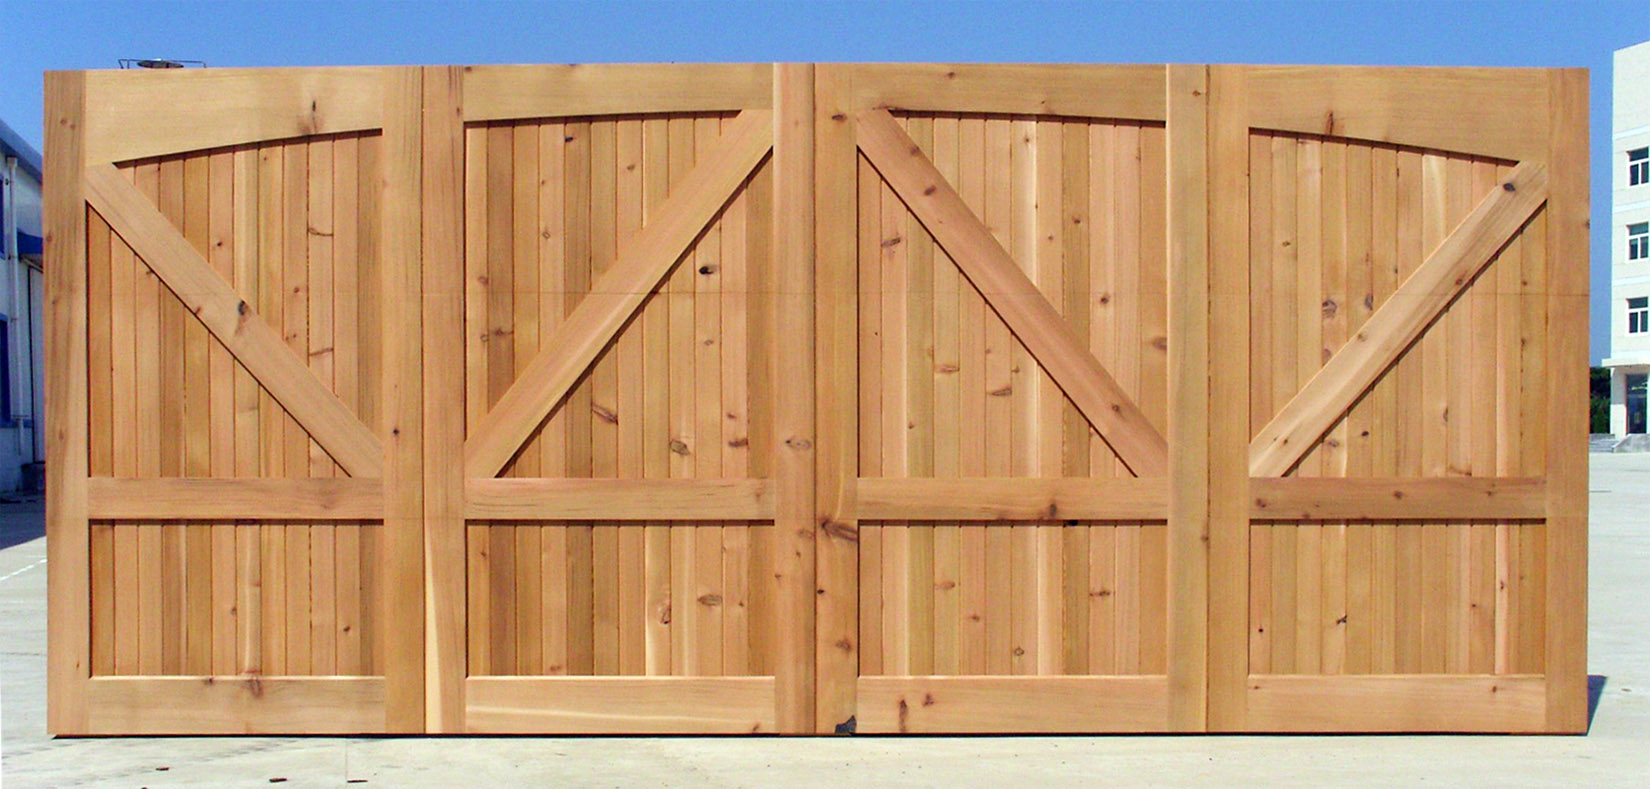 Wood garage doors wooden overhead door paint grade for 16 x 10 garage door cost